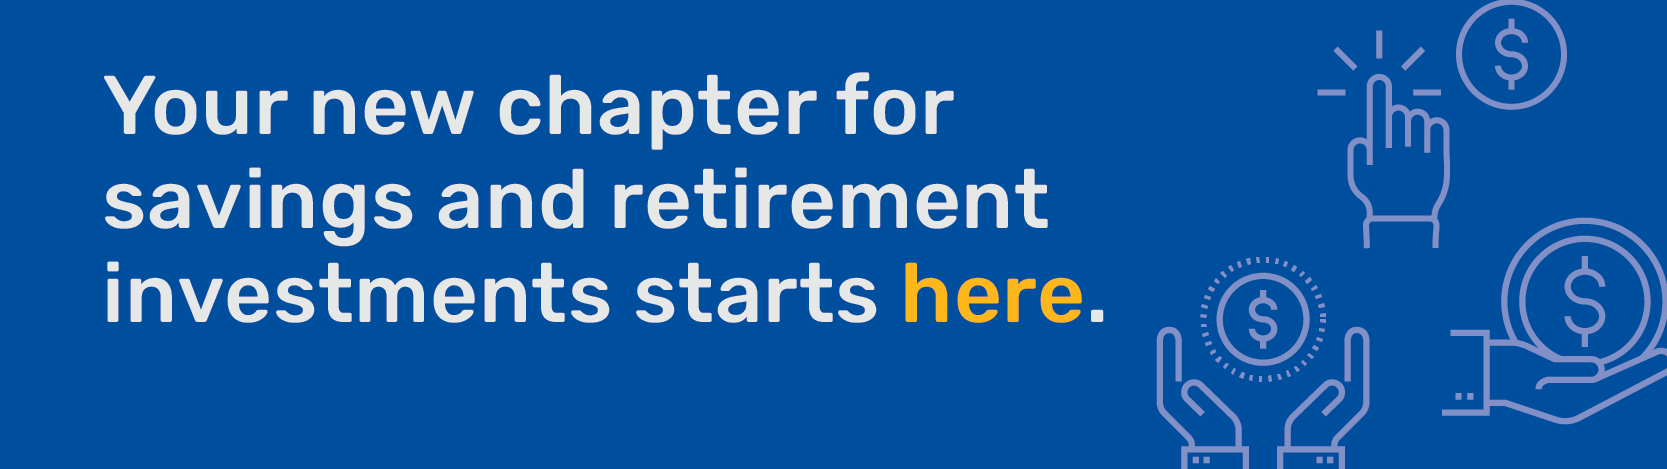 Your new chapter for savings and retirement investments starts here.